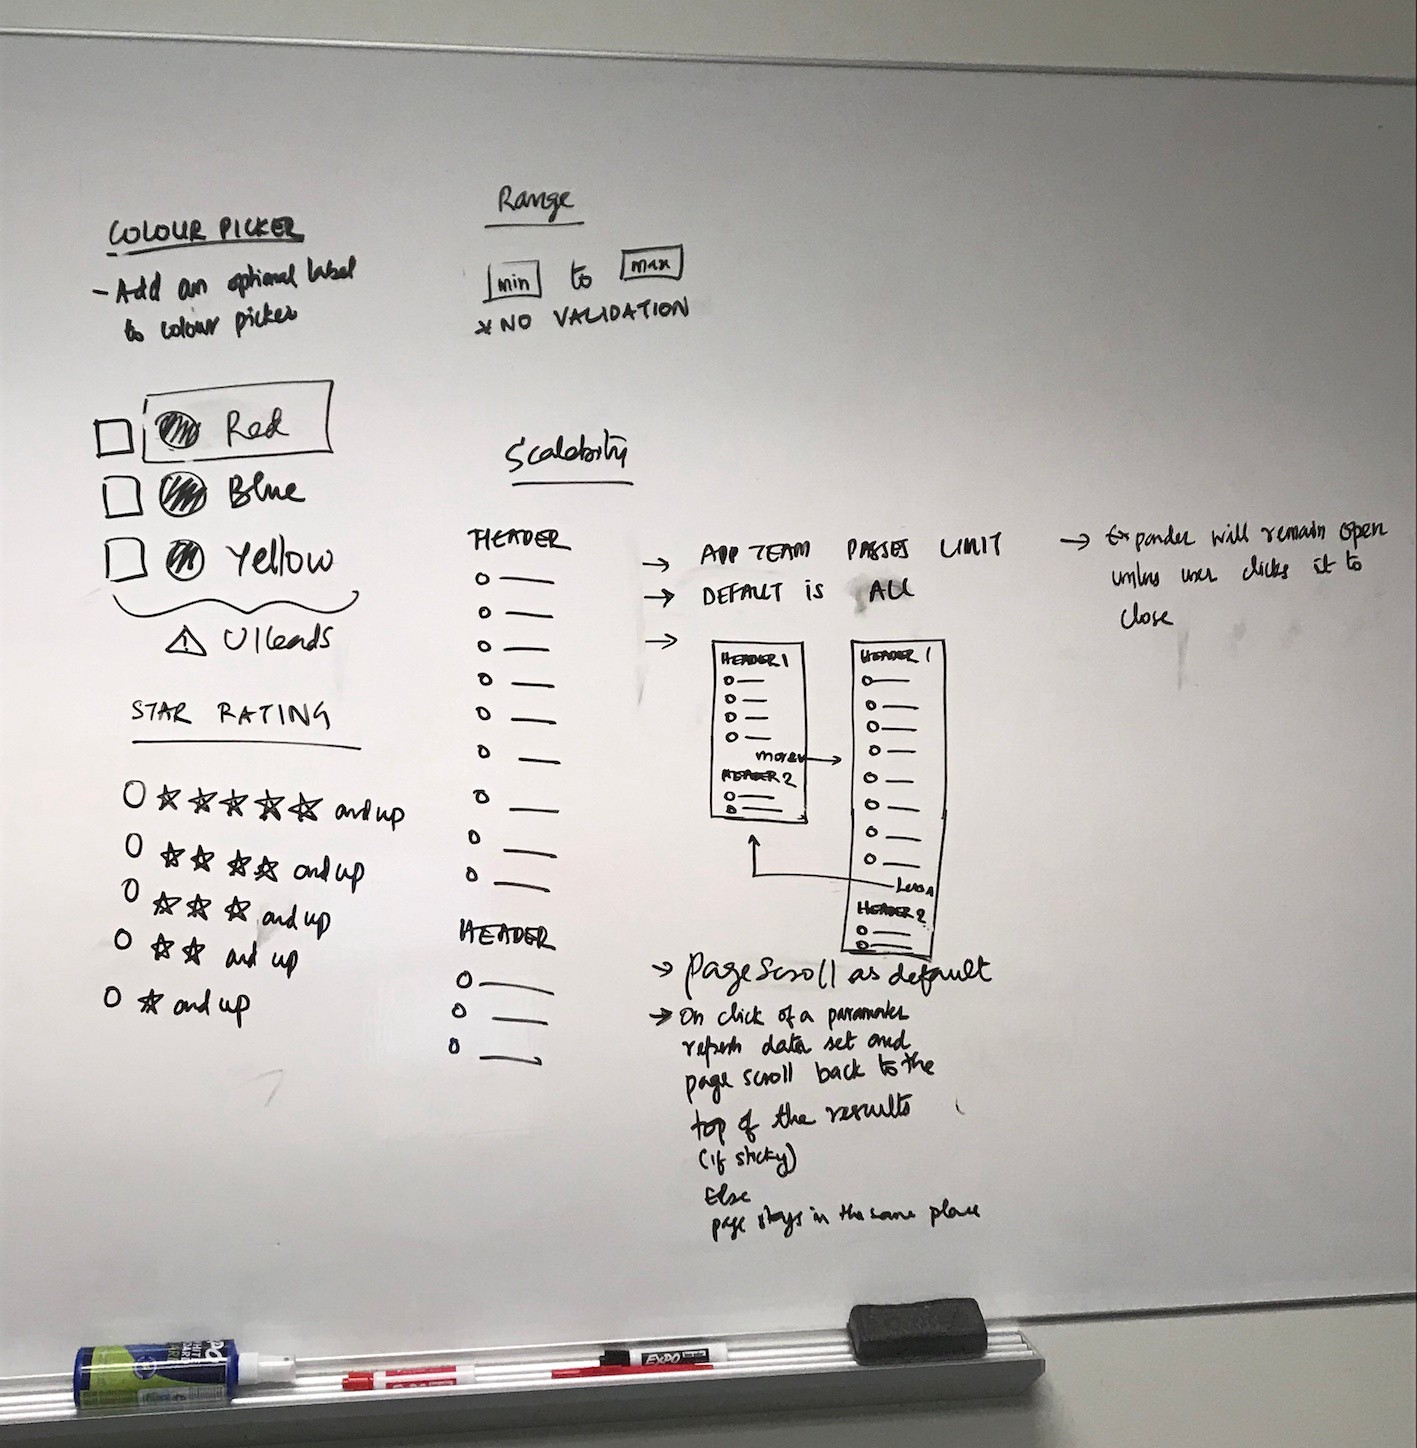 whiteboard sketch of a data filter with data points and behaviours